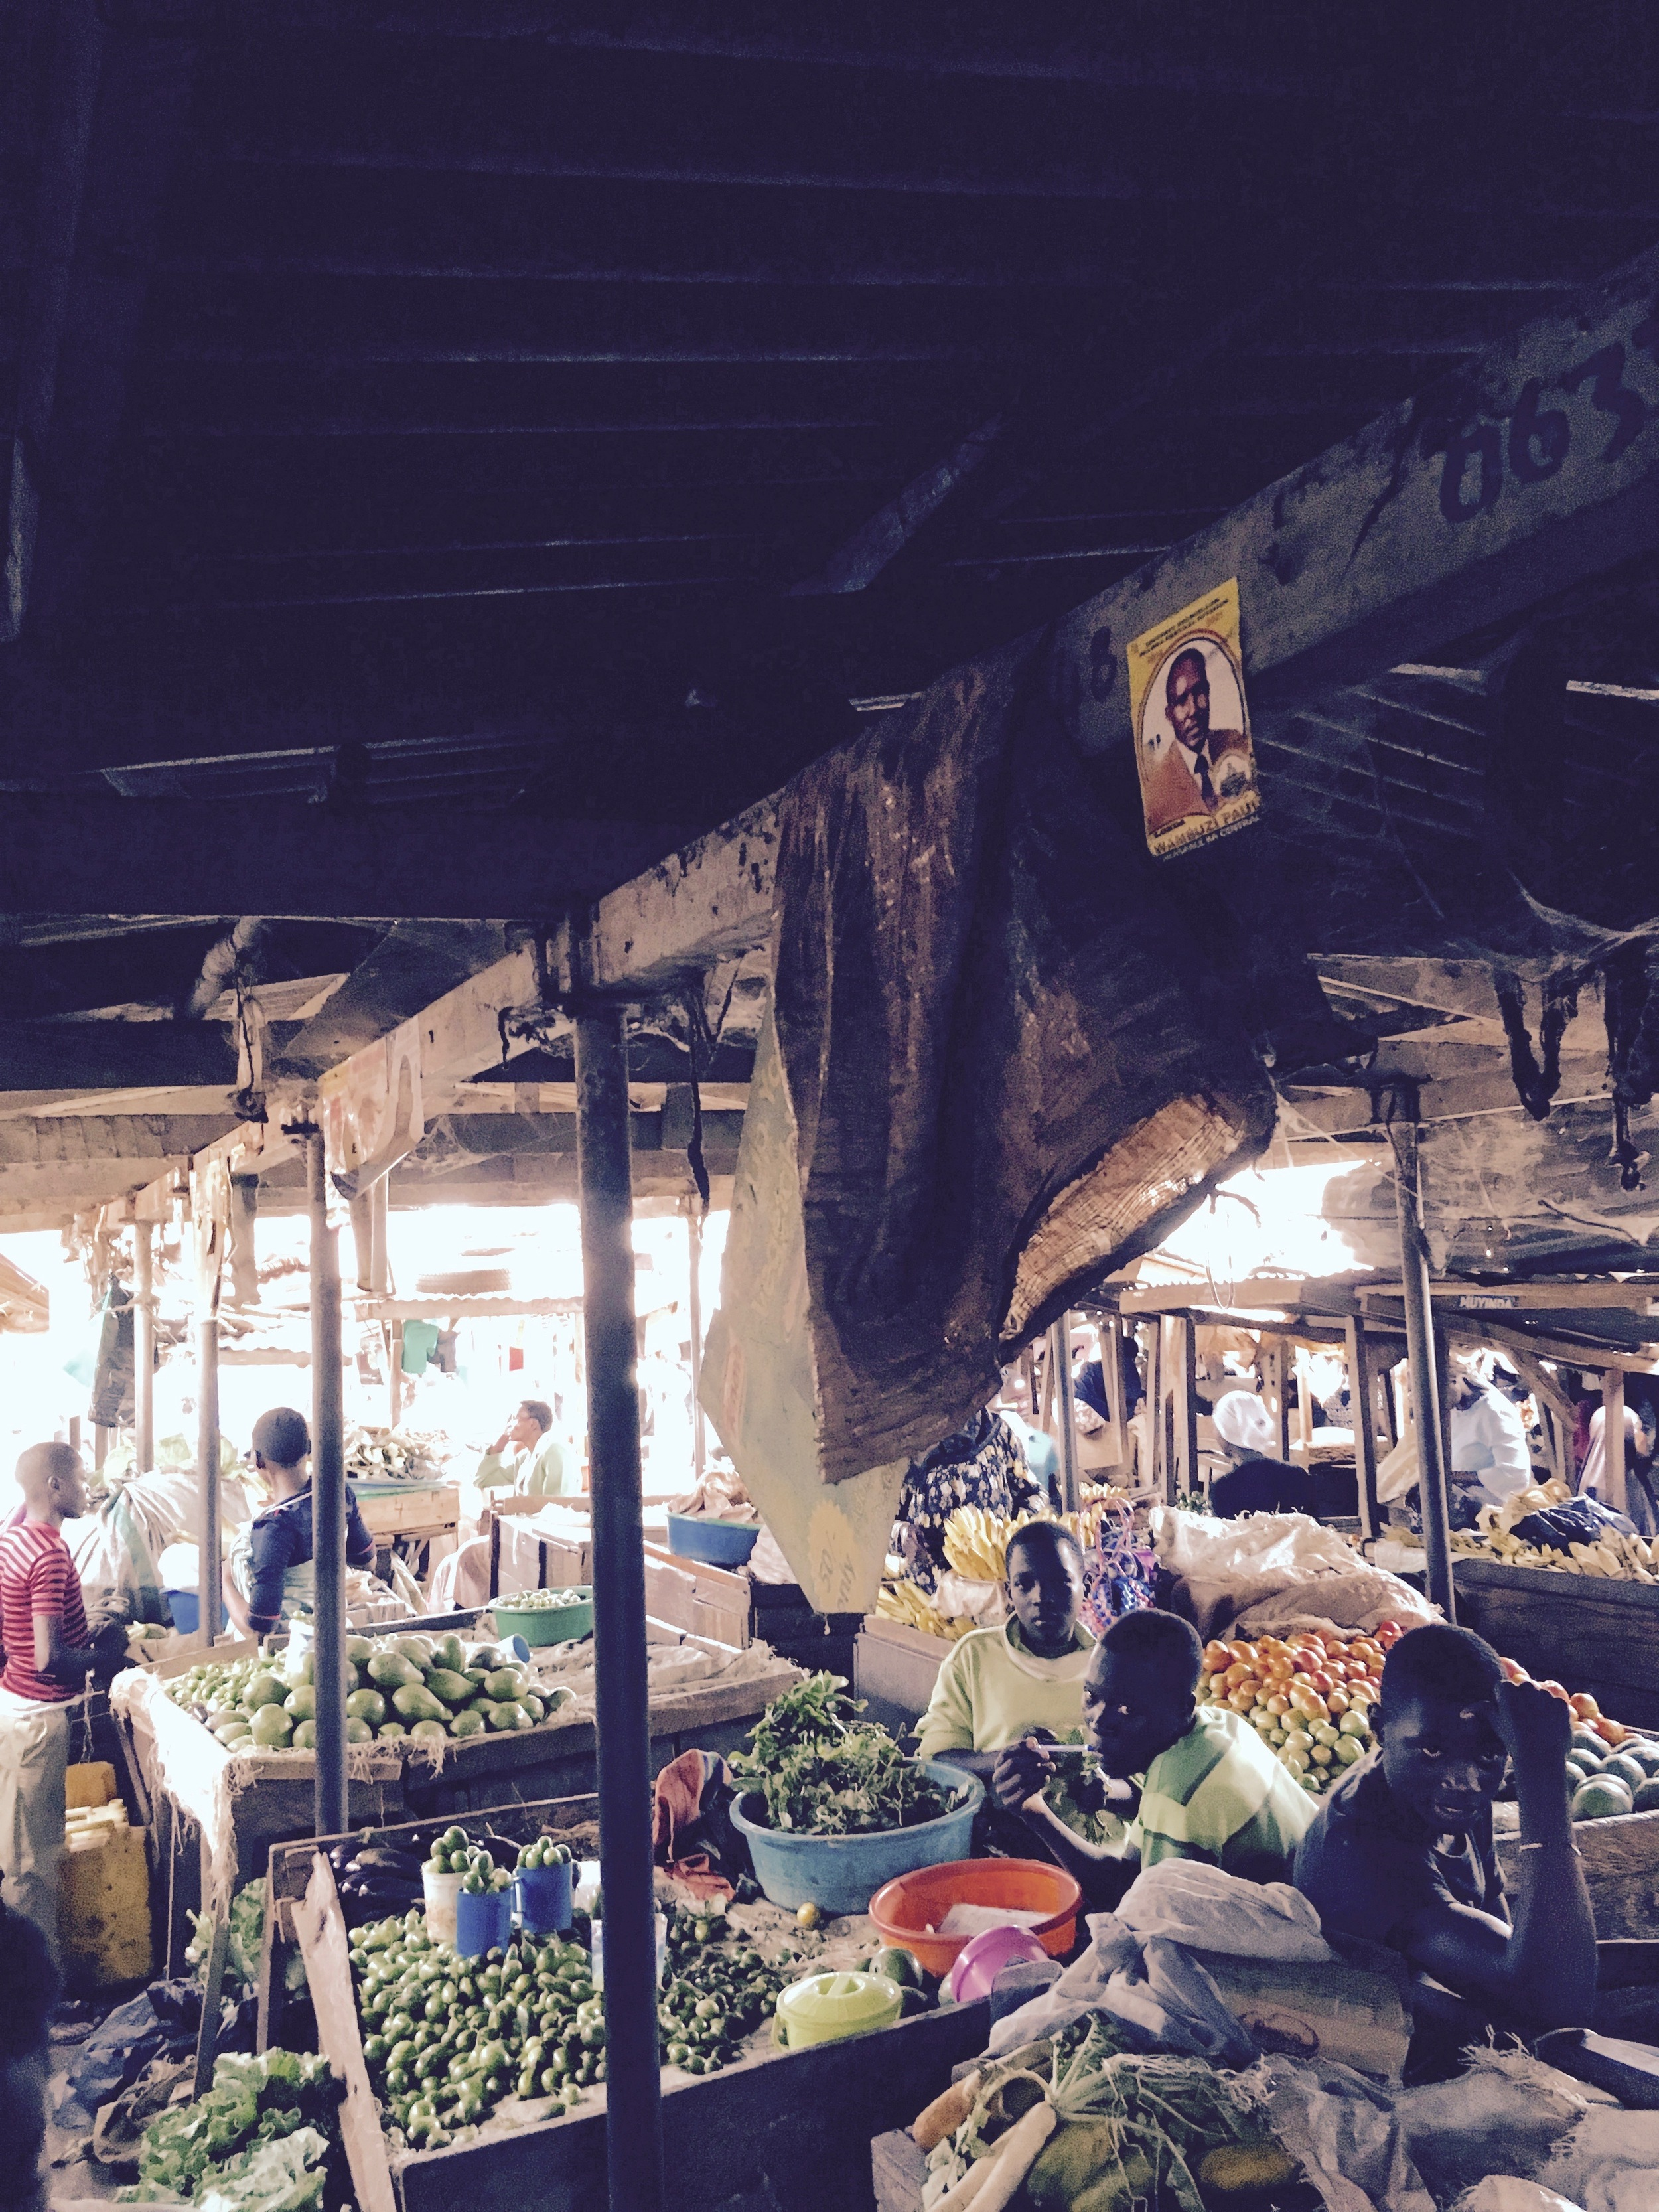 This was the market area! I have never seen so many vegetables in one area at one time :O